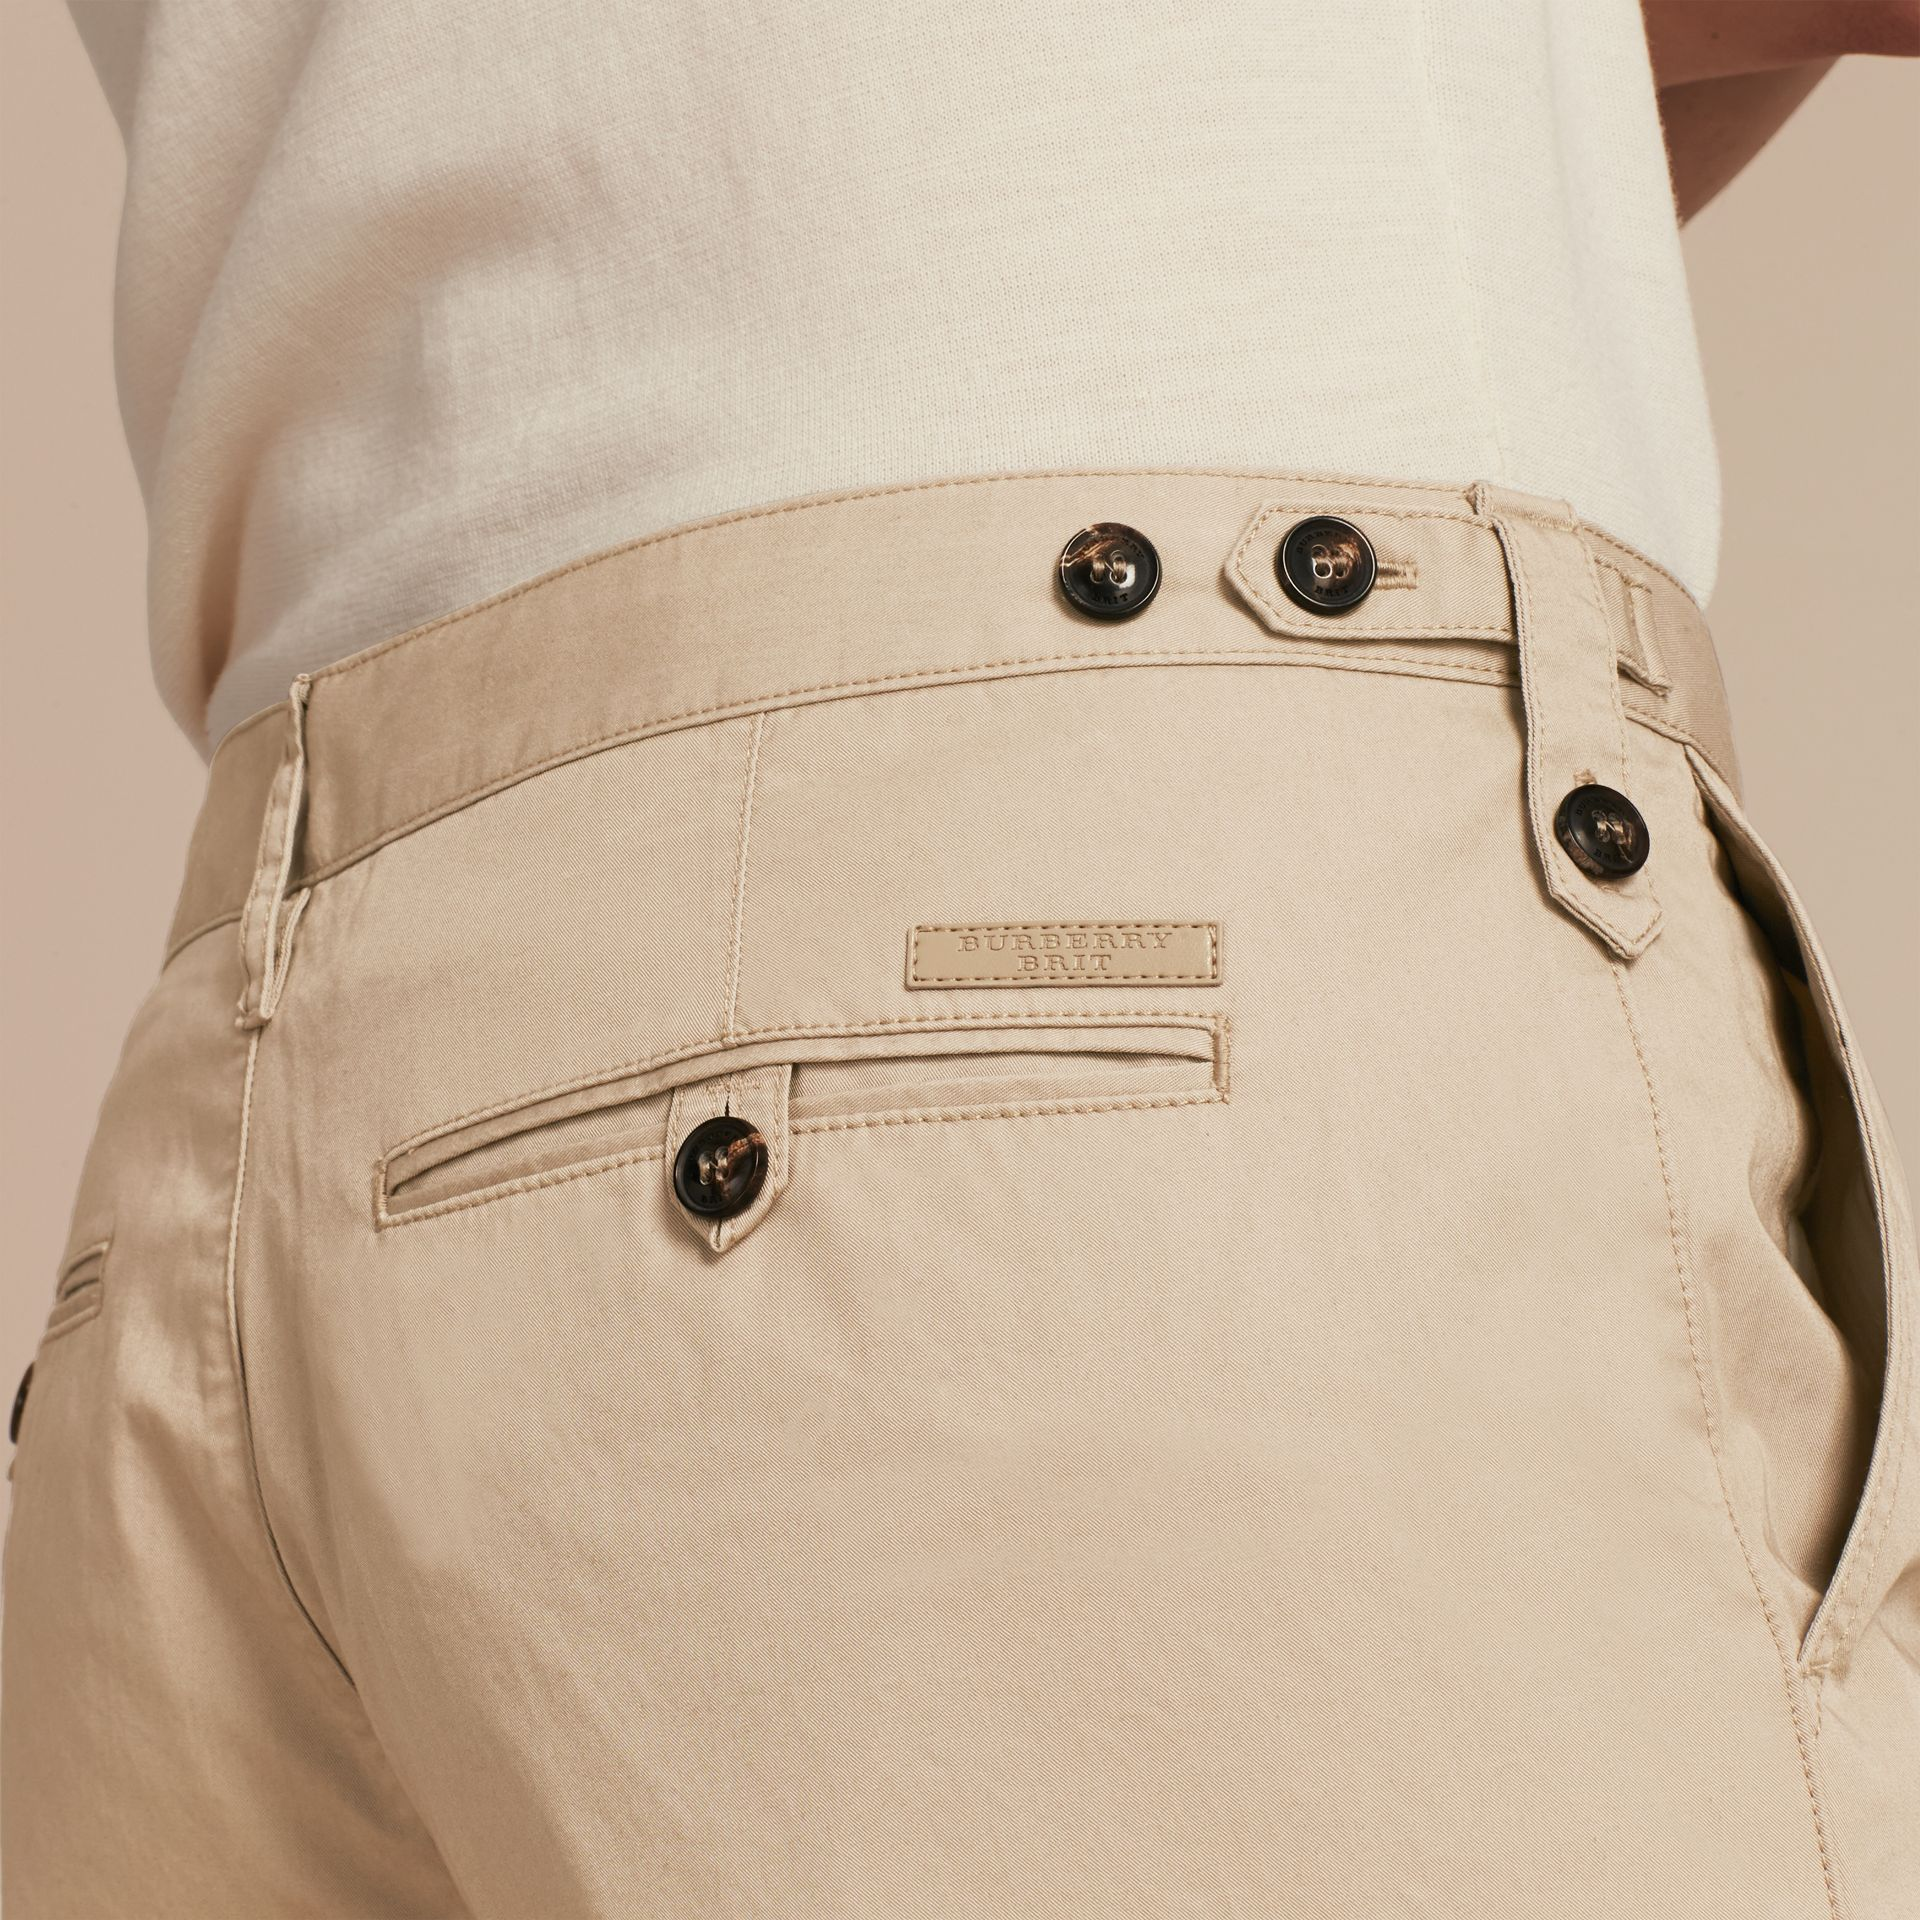 Straight Fit Cotton Chinos in Taupe - Men | Burberry - gallery image 5